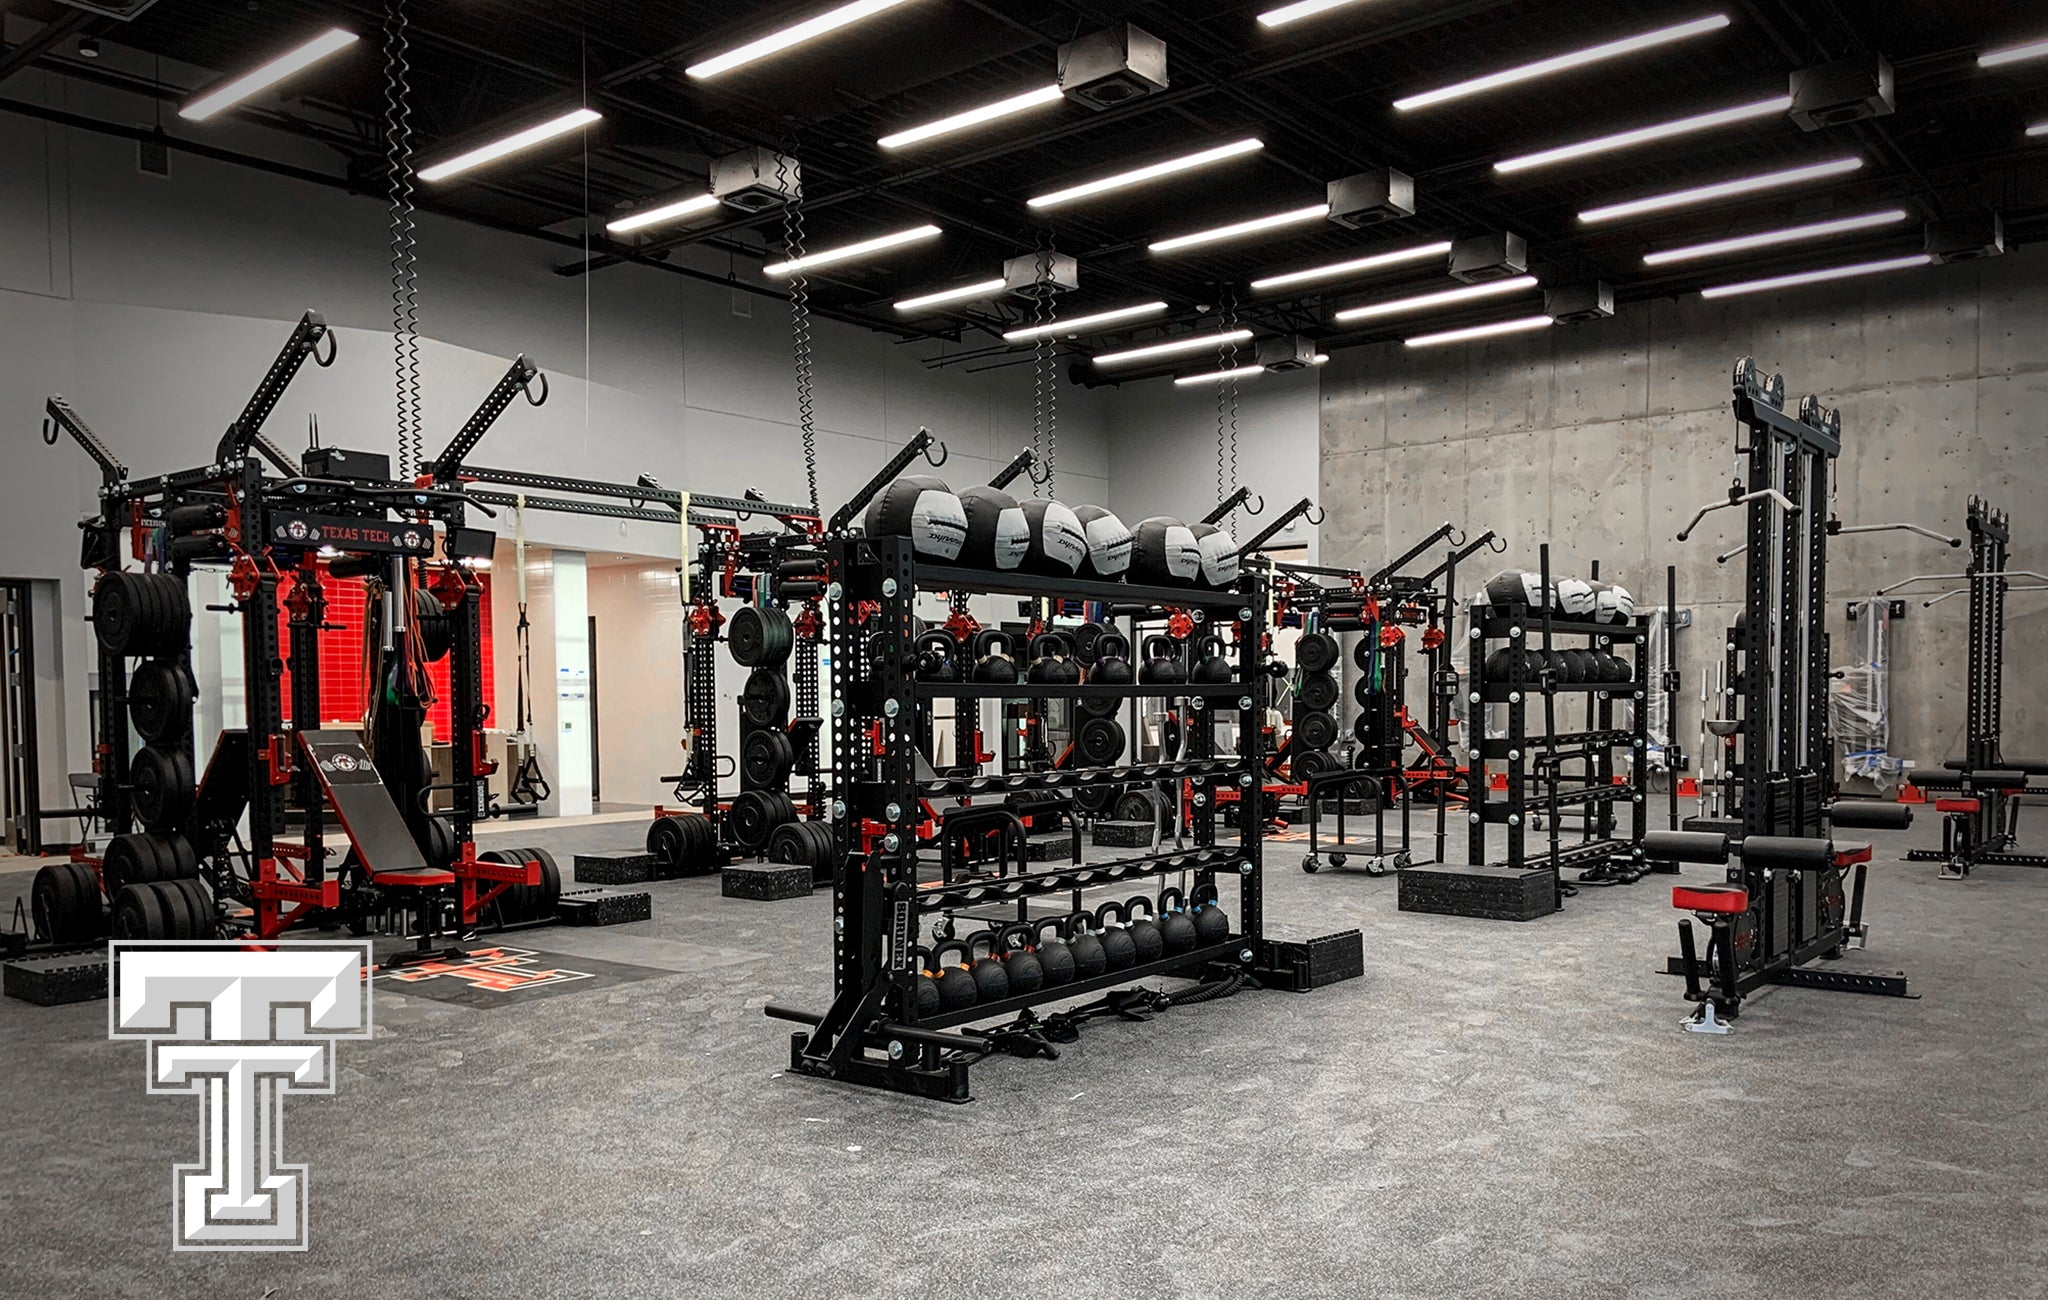 Texas Tech University Sorinex strength and conditioning facility